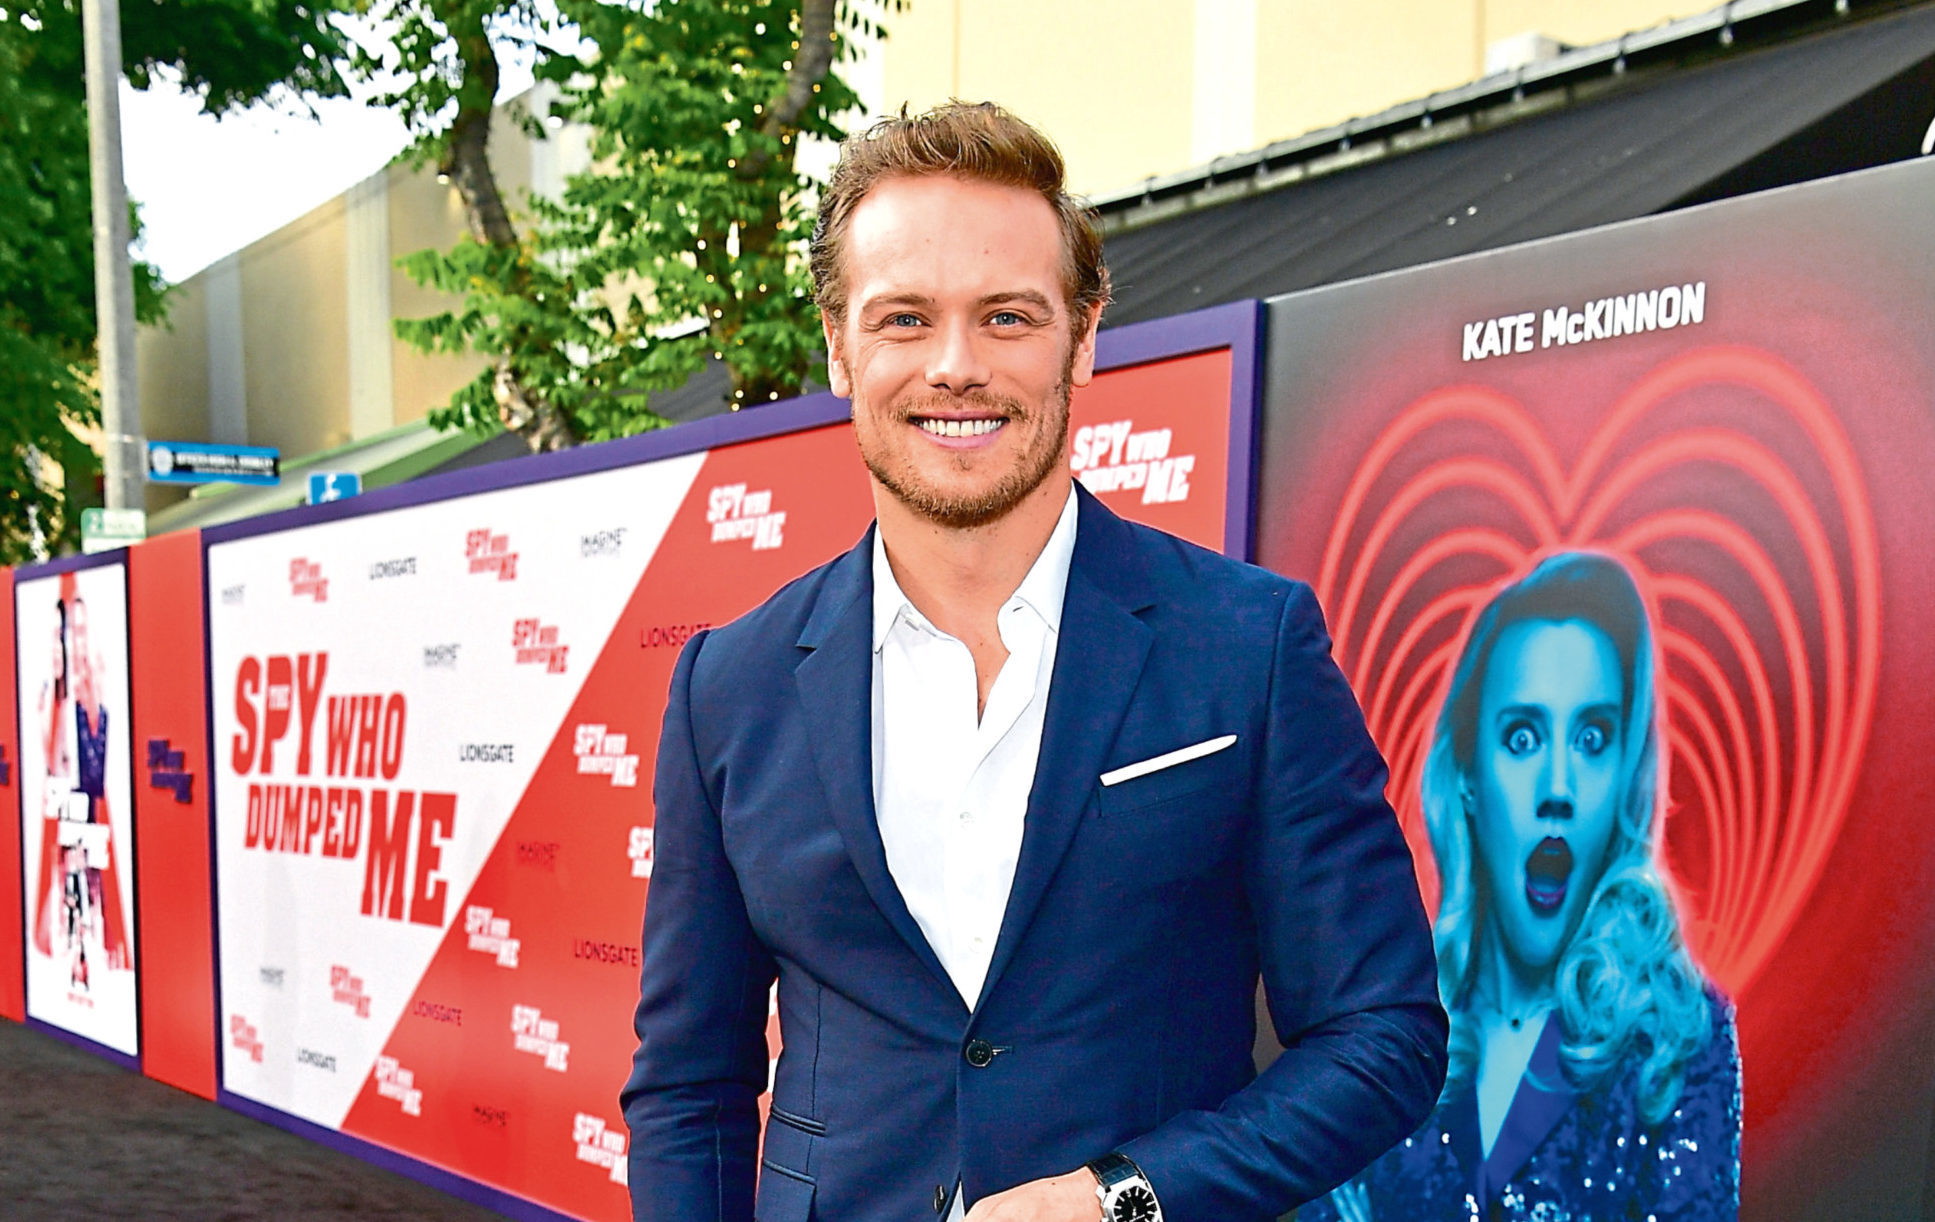 Sam Heughan attends the premiere of Lionsgate's 'The Spy Who Dumped Me' at Fox Village Theater on July 25, 2018 in Los Angeles, California.  Emma McIntyre/Getty Images.